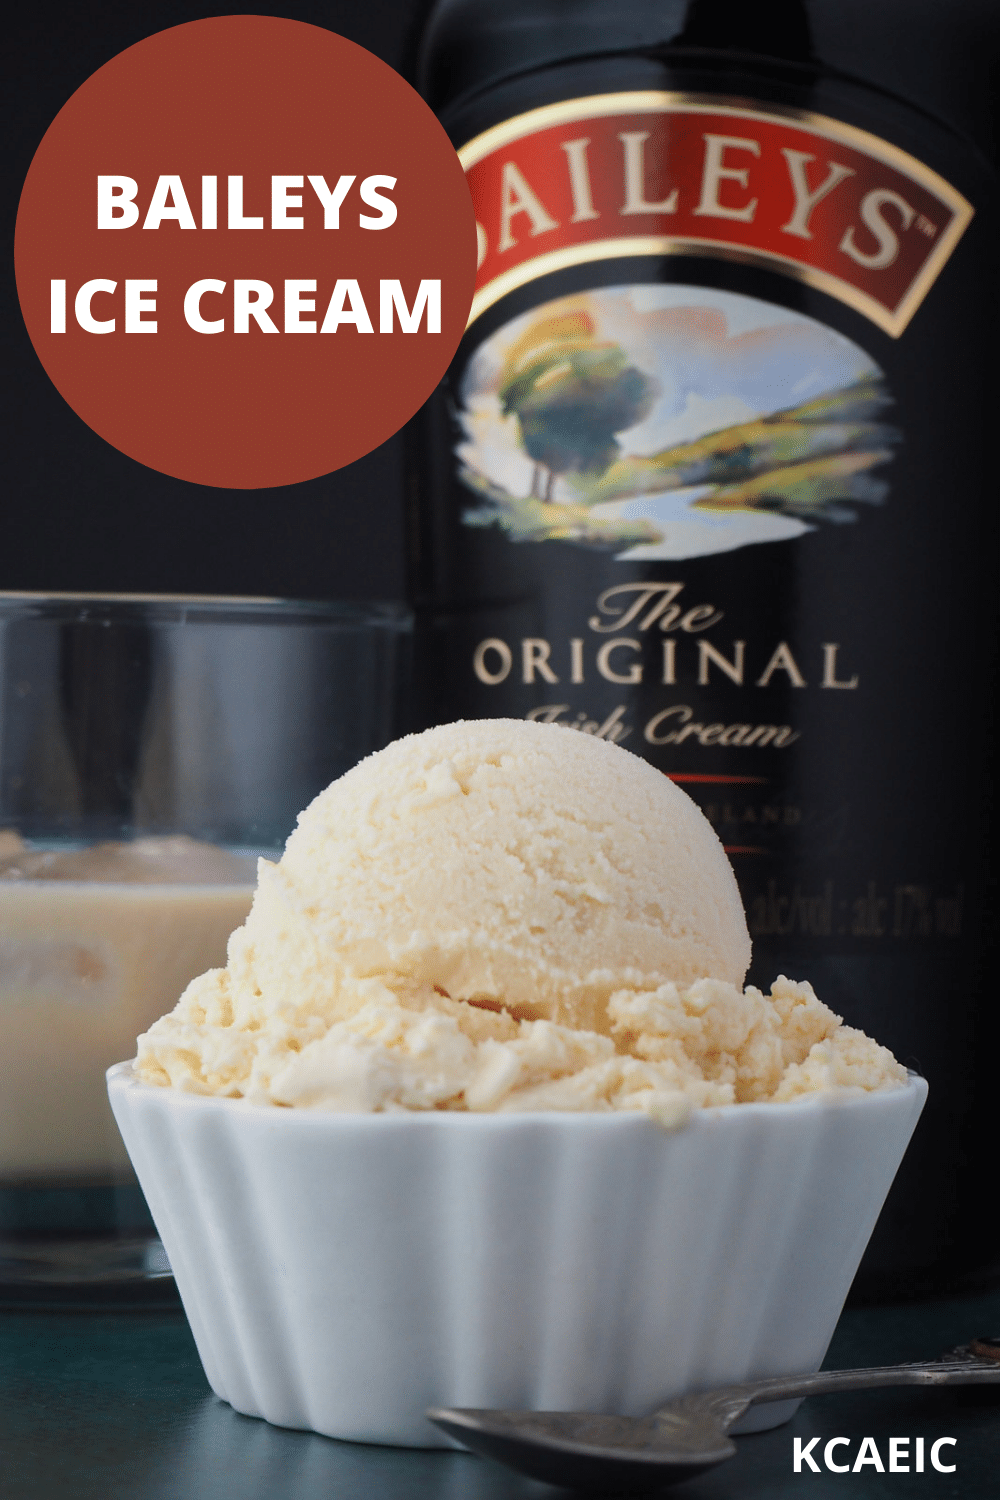 Close up Baileys ice cream scoop with glass of Baileys and bottle of Baileys in the background and text overlay, Baileys ice cream, KCAEIC.